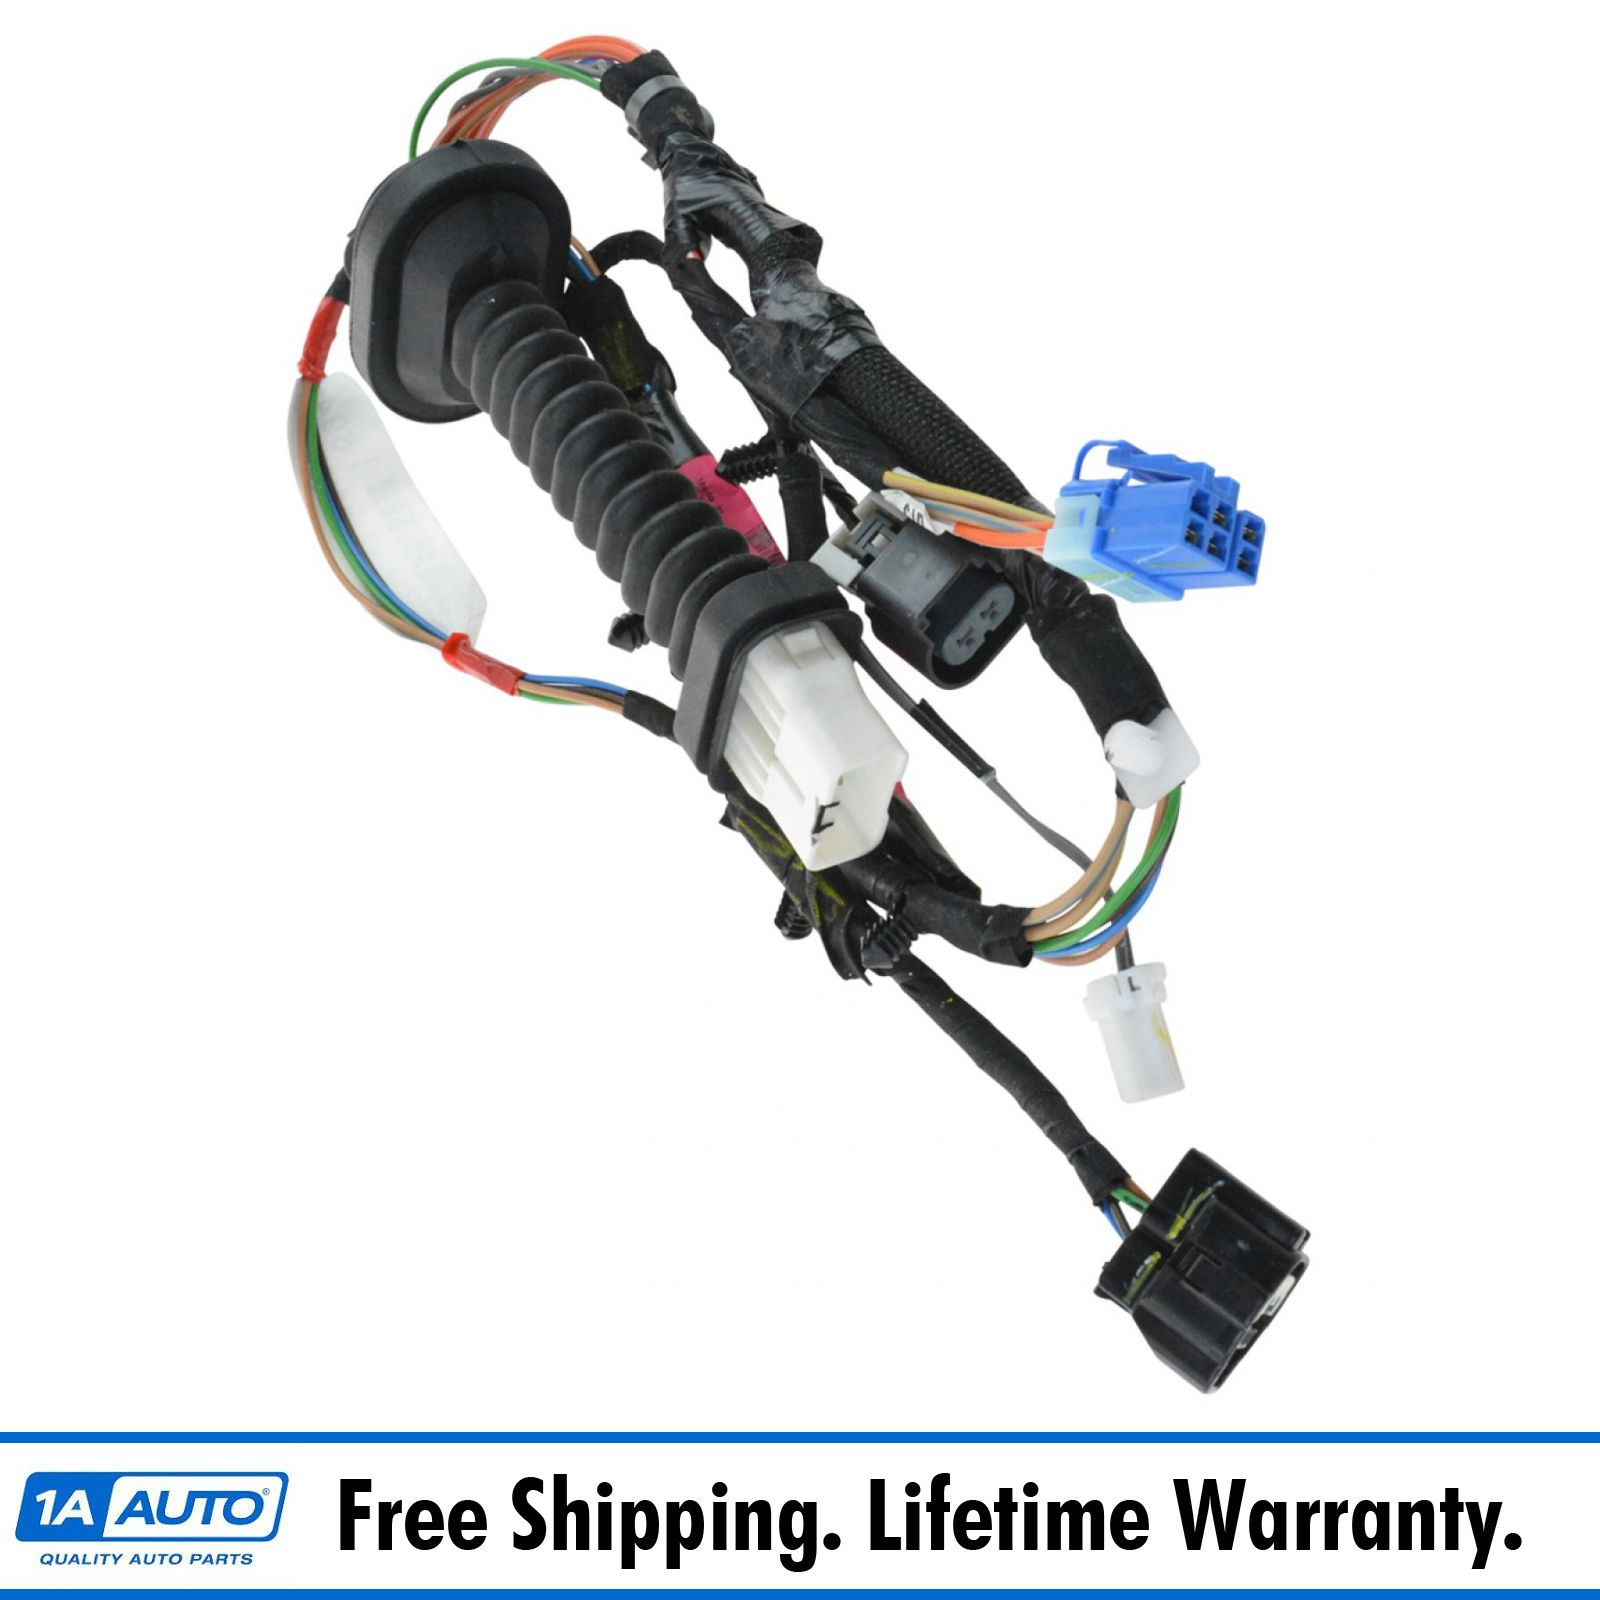 hight resolution of details about oem 56051694aa rear door electrical wiring harness lh or lh for ram pickup truck